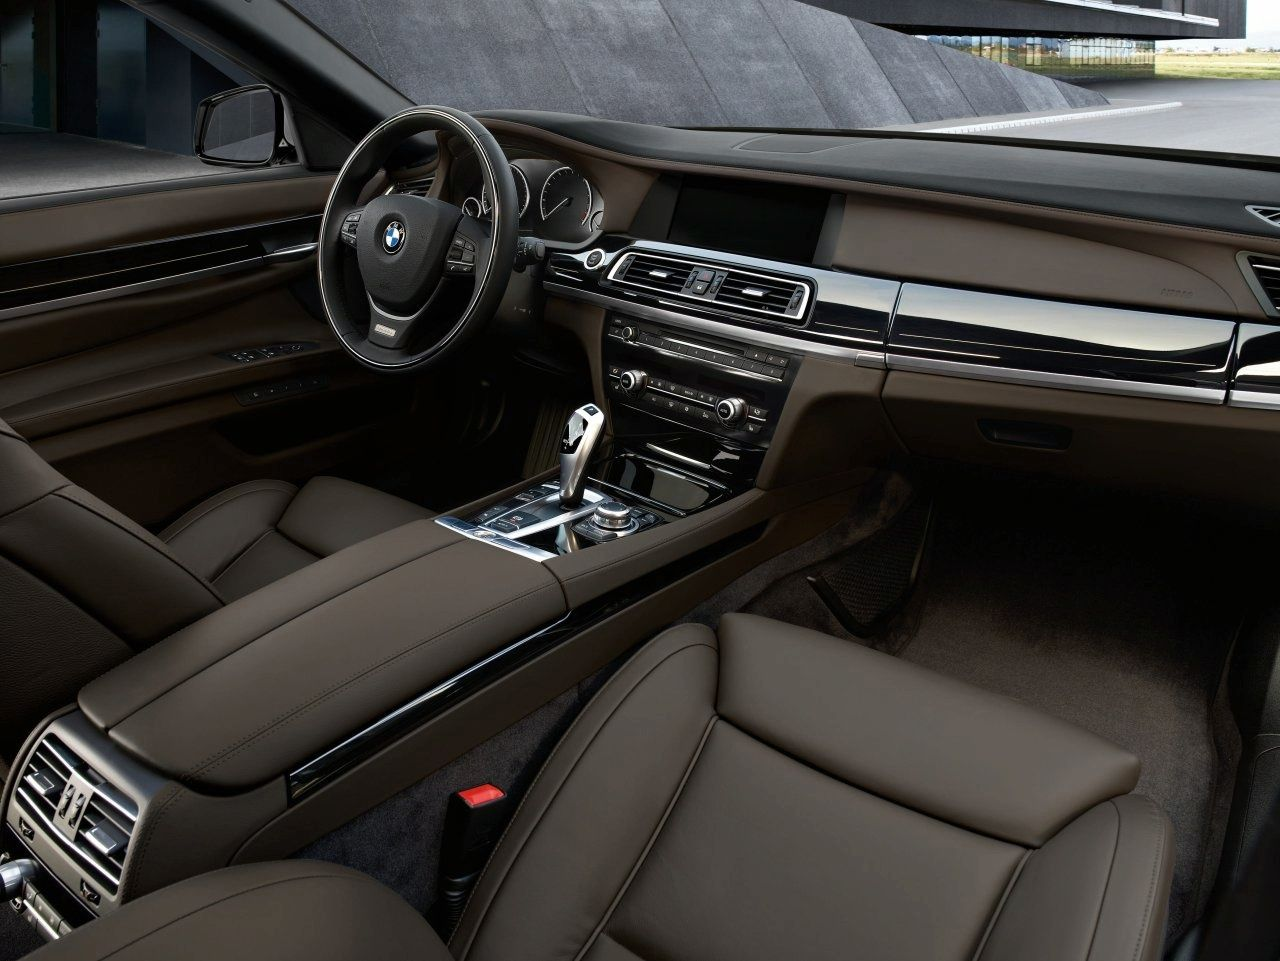 2009 Bmw 7 Series Individual Version With Images Bmw New